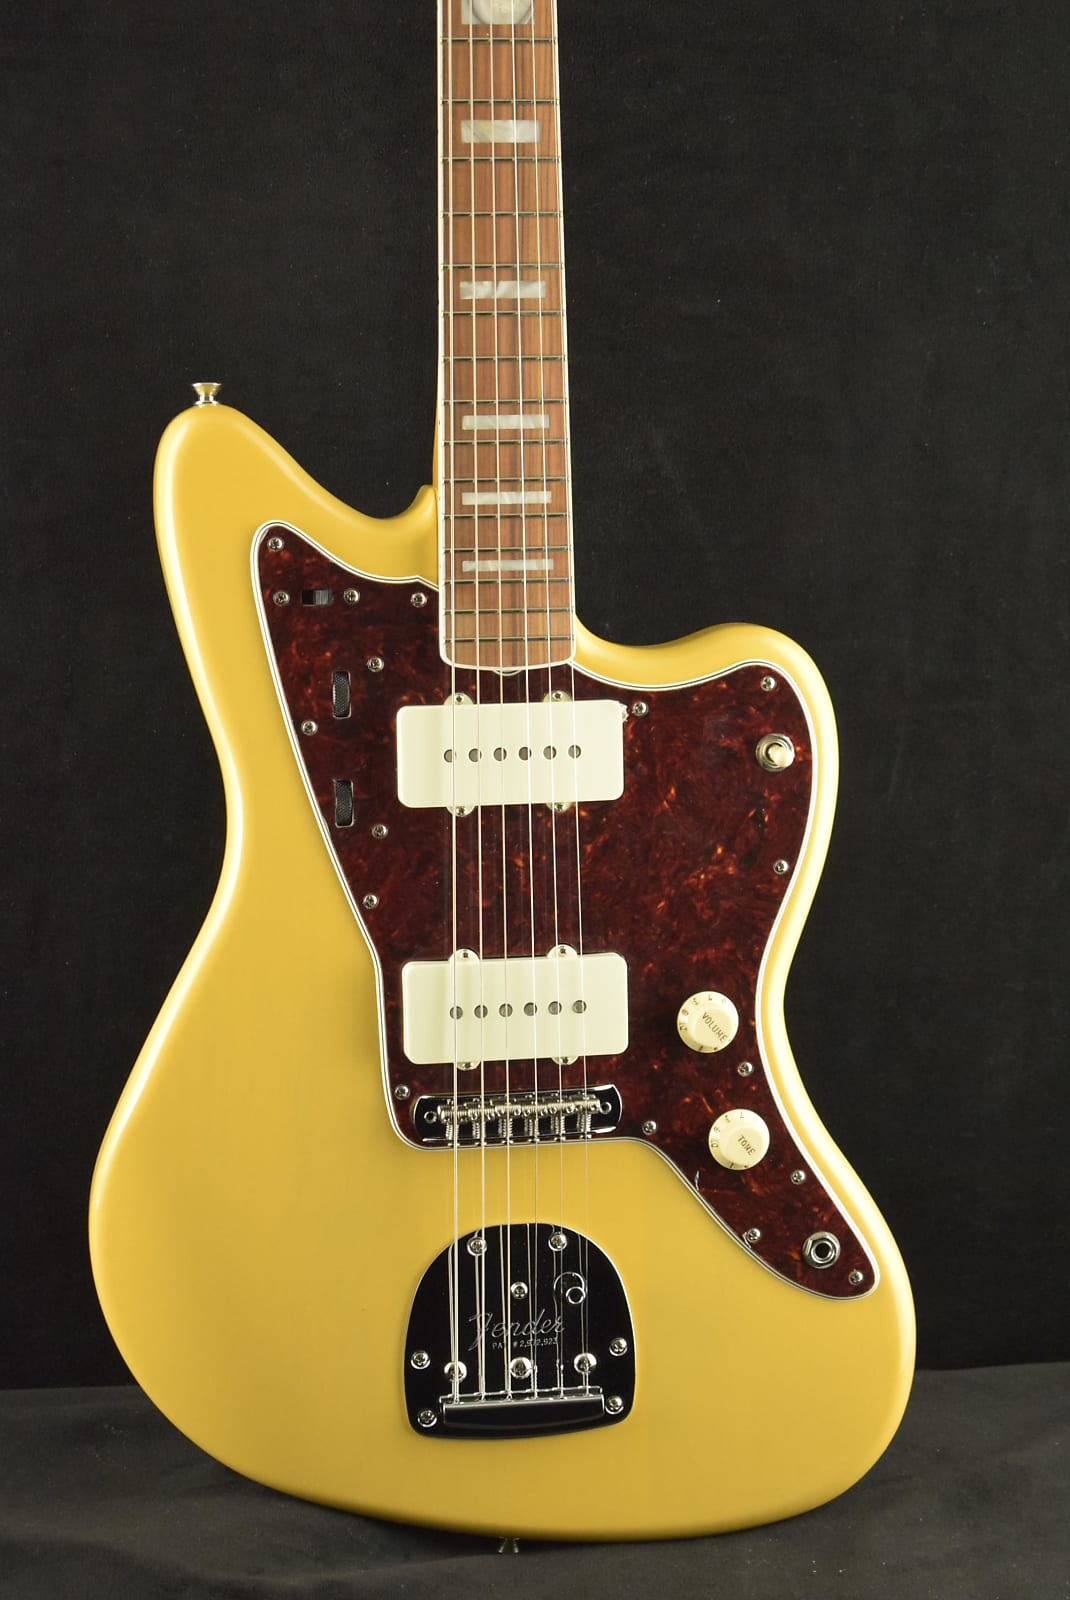 Fender Limited Edition 60th Anniversary Classic Jazzmaster with Matching Headstock